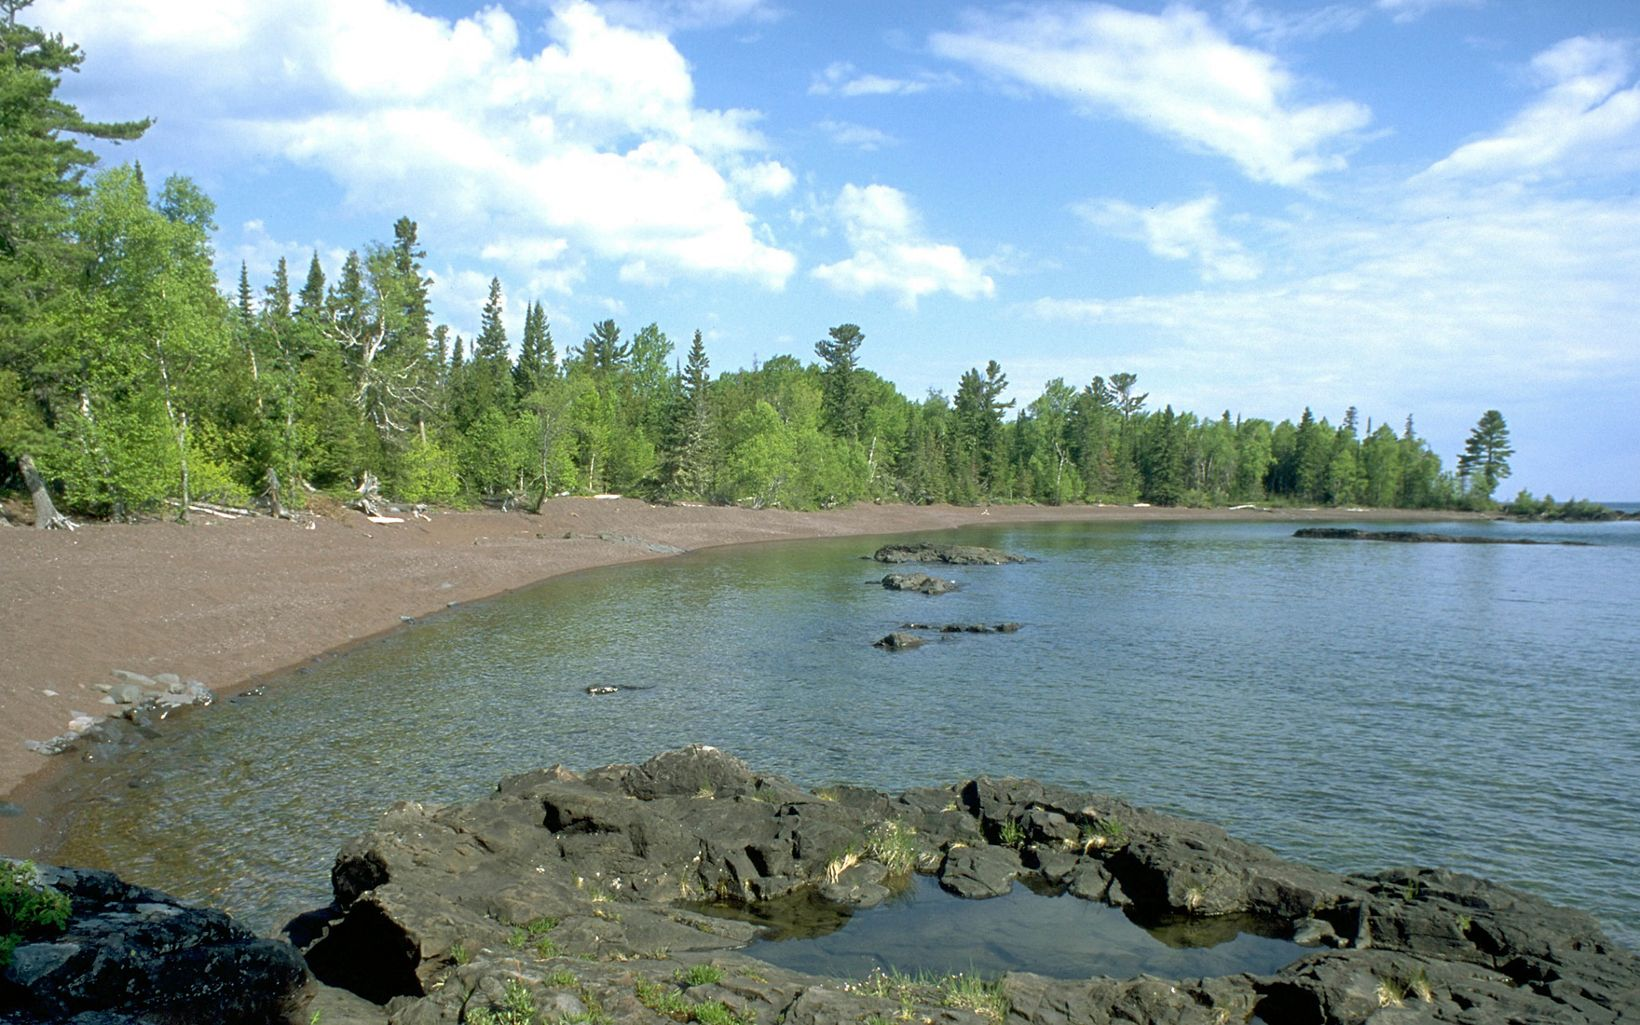 Pine trees on the brown gravel shoreline of the blue-green waters at Horseshoe Harbor.